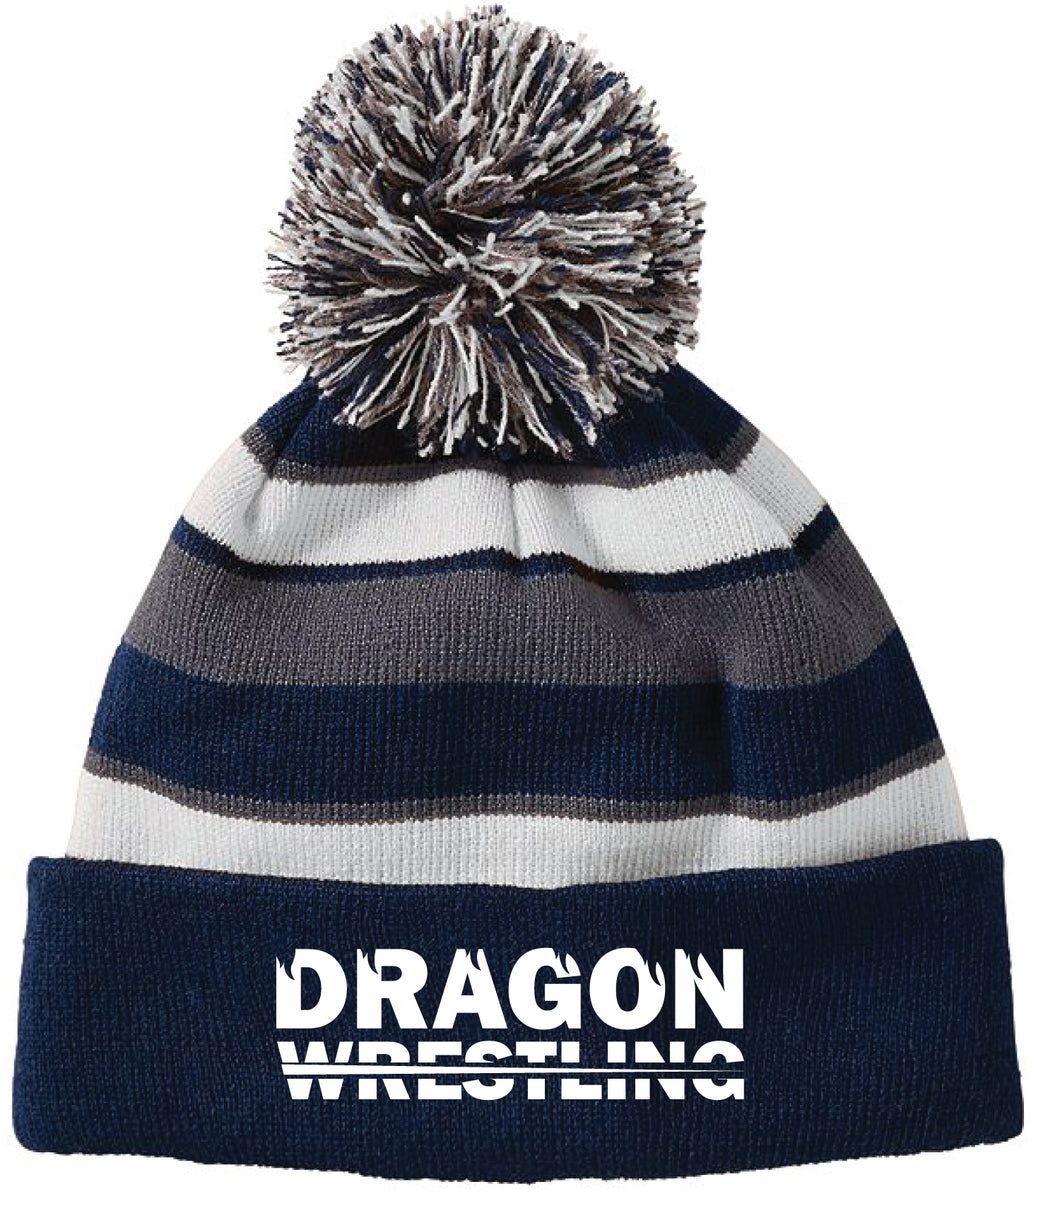 Middletown Dragons Pom Beanie